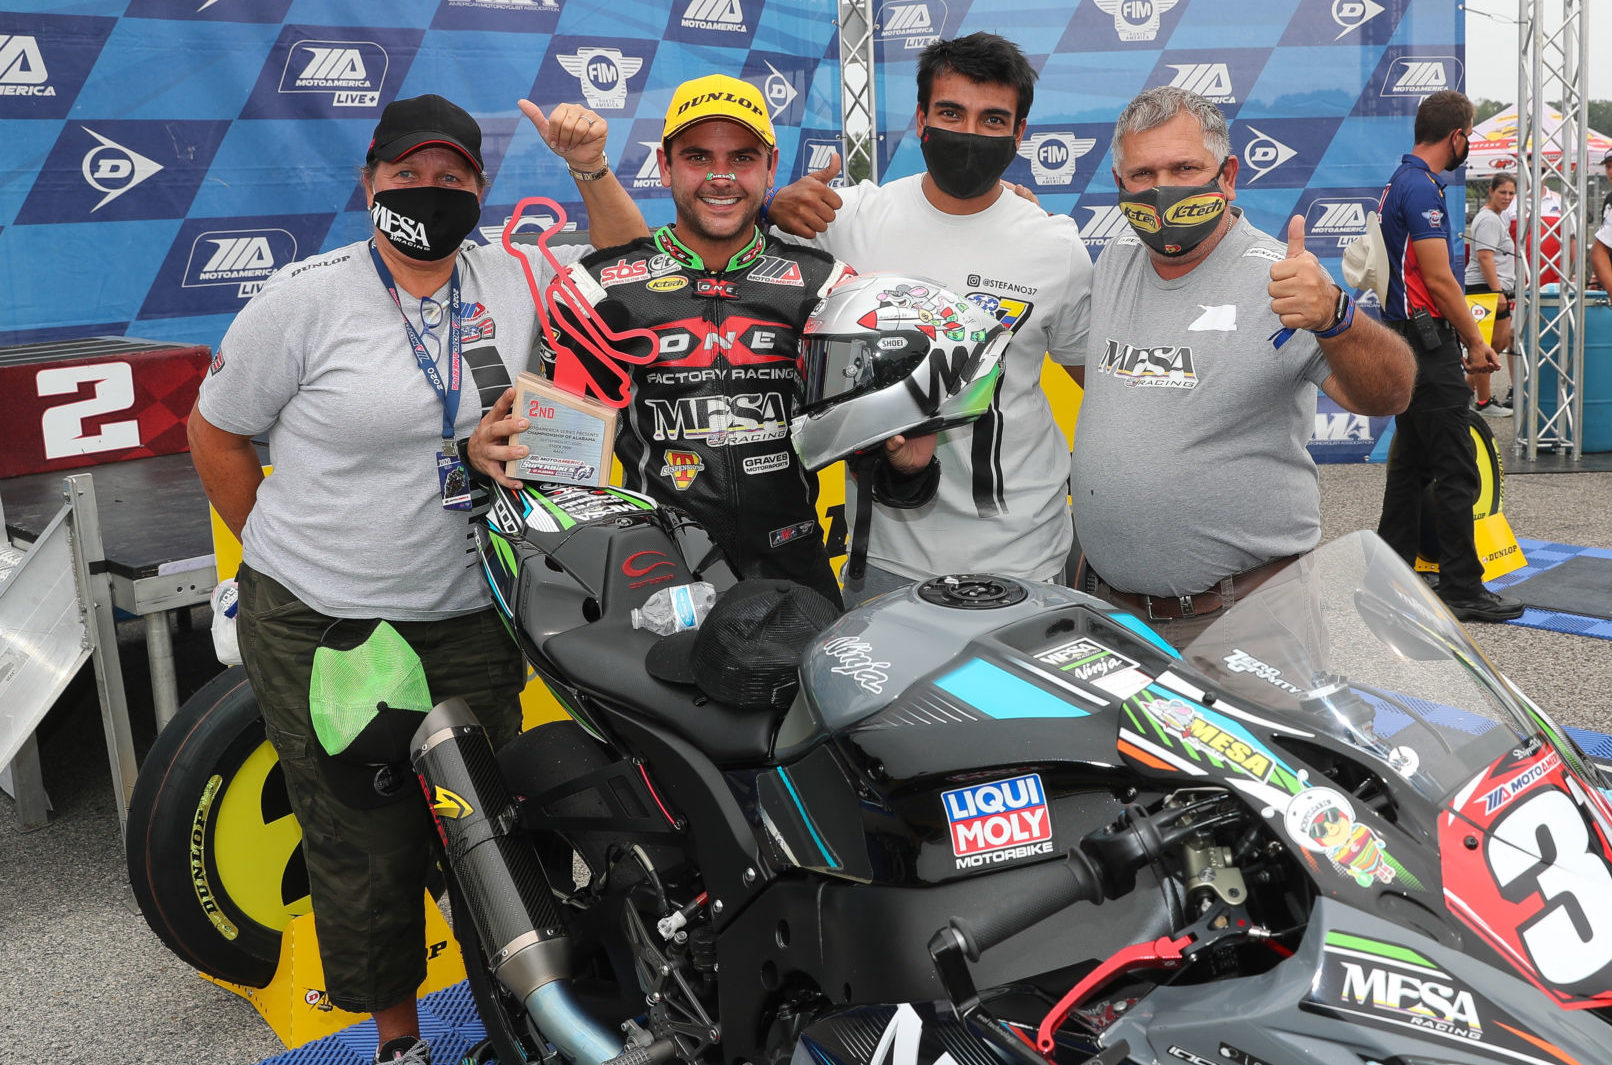 Stefano Mesa (second from left) with his father Mauricio (far right), his mother Karen (far left) and friend/crew member Erick Orozco (second from right) at the MotoAmerica Stock 1000 podium at Barber Motorsports Park. Photo by Brian J. Nelson.